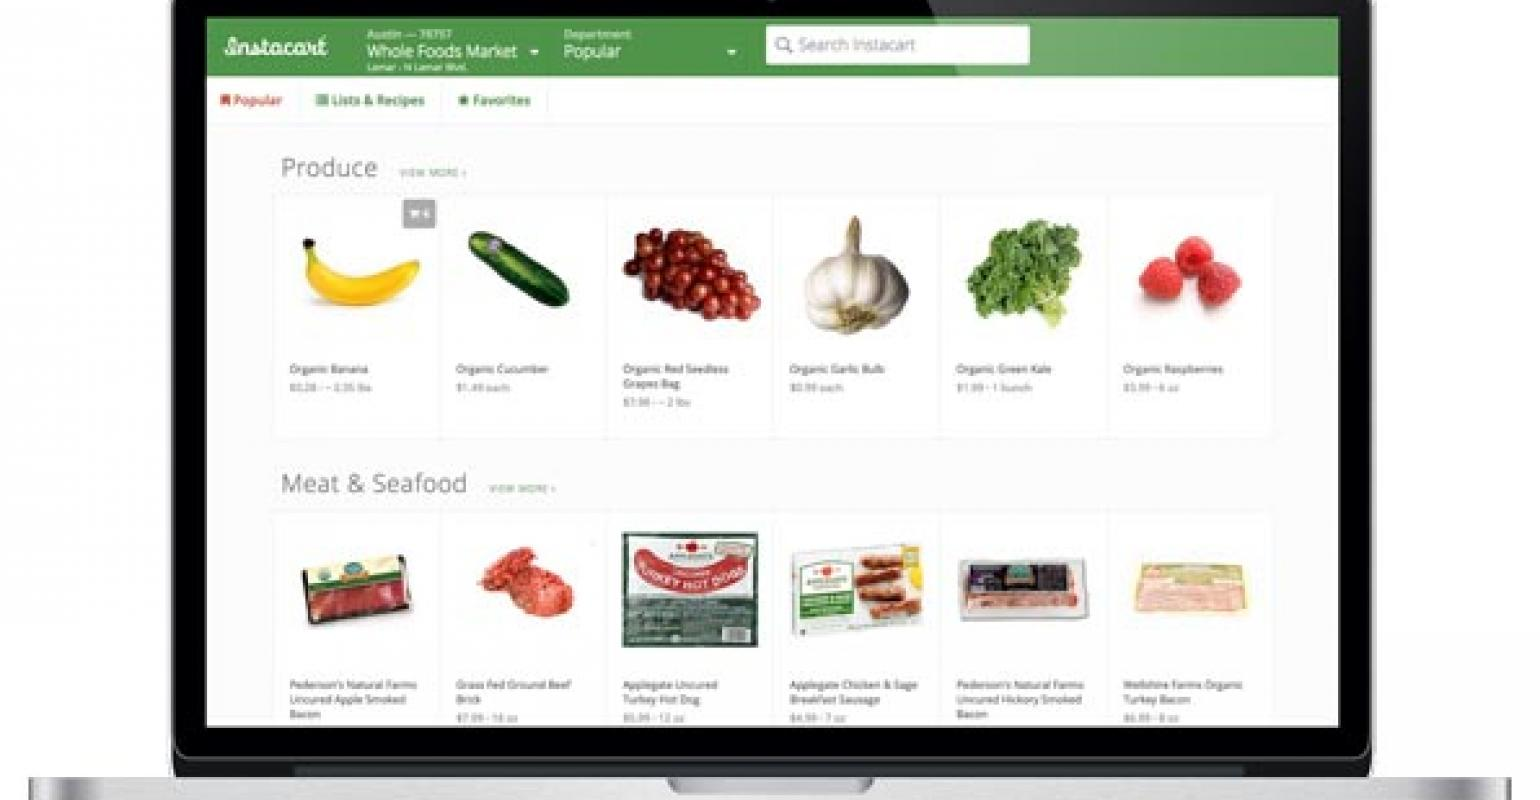 Does Instacart deliver $2 billion in value to customers